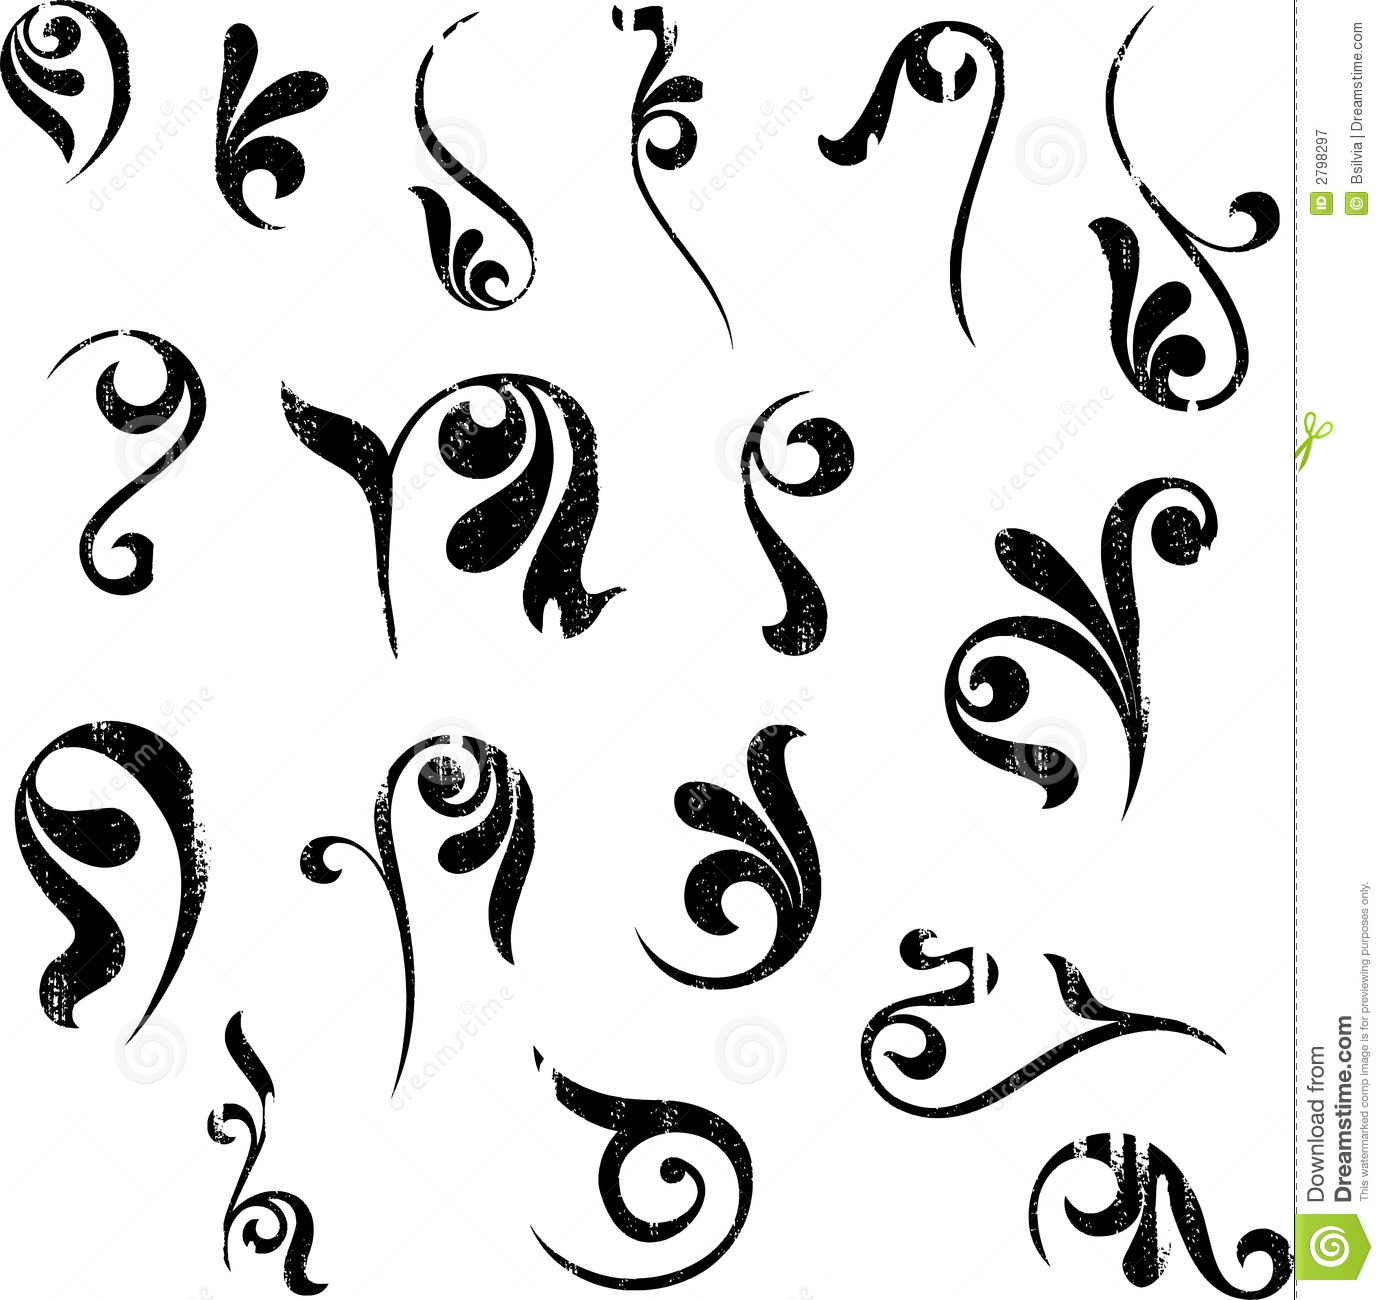 Floral Shapes Royalty Free Stock Photography